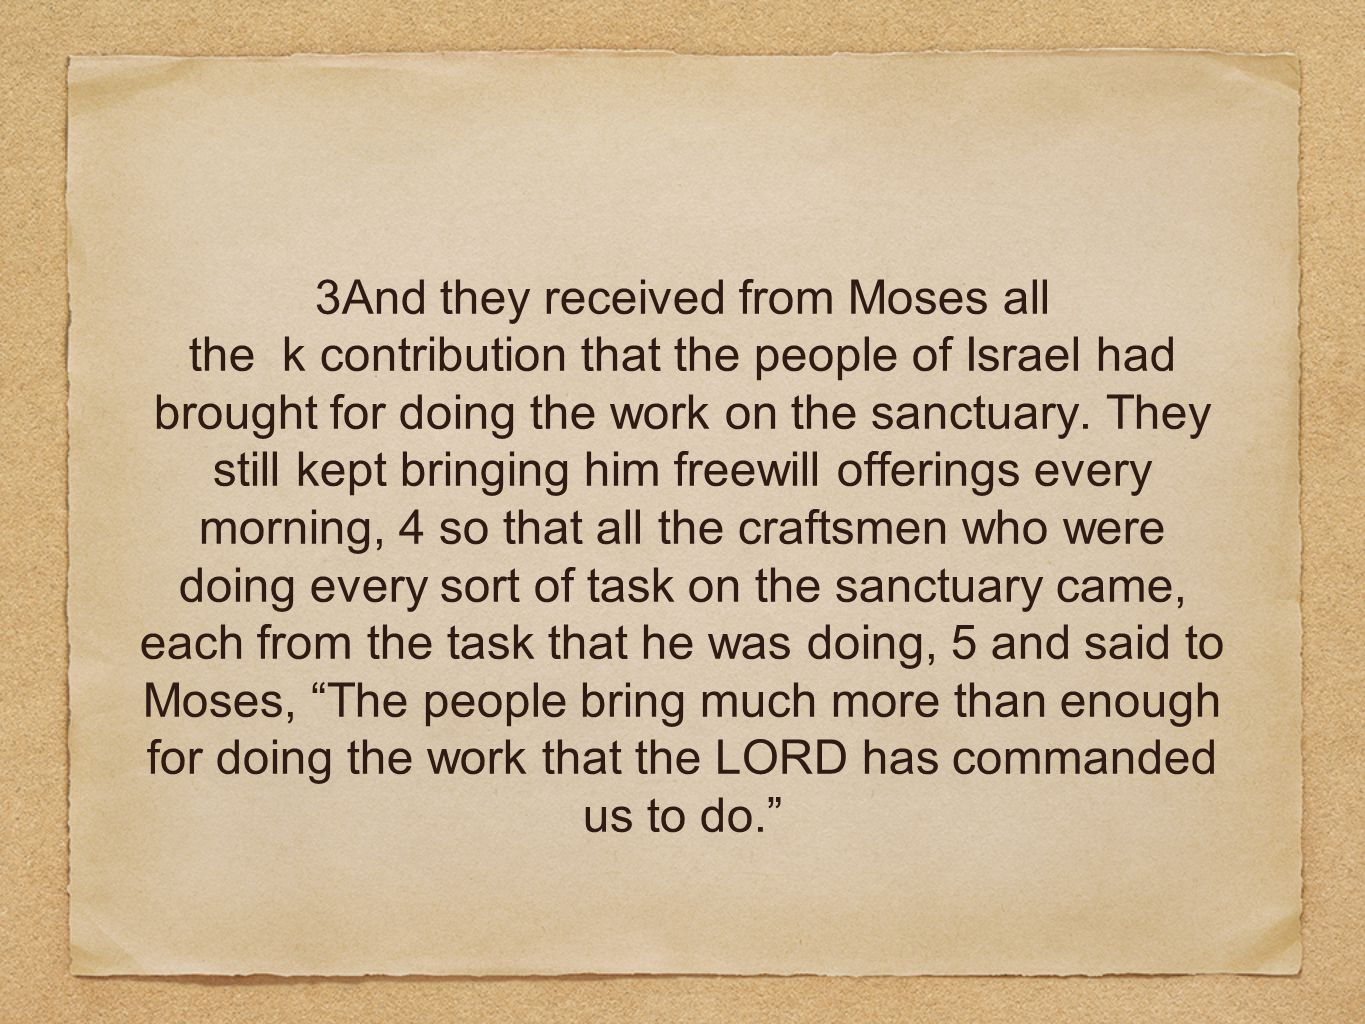 3And they received from Moses all the k contribution that the people of Israel had brought for doing the work on the sanctuary.